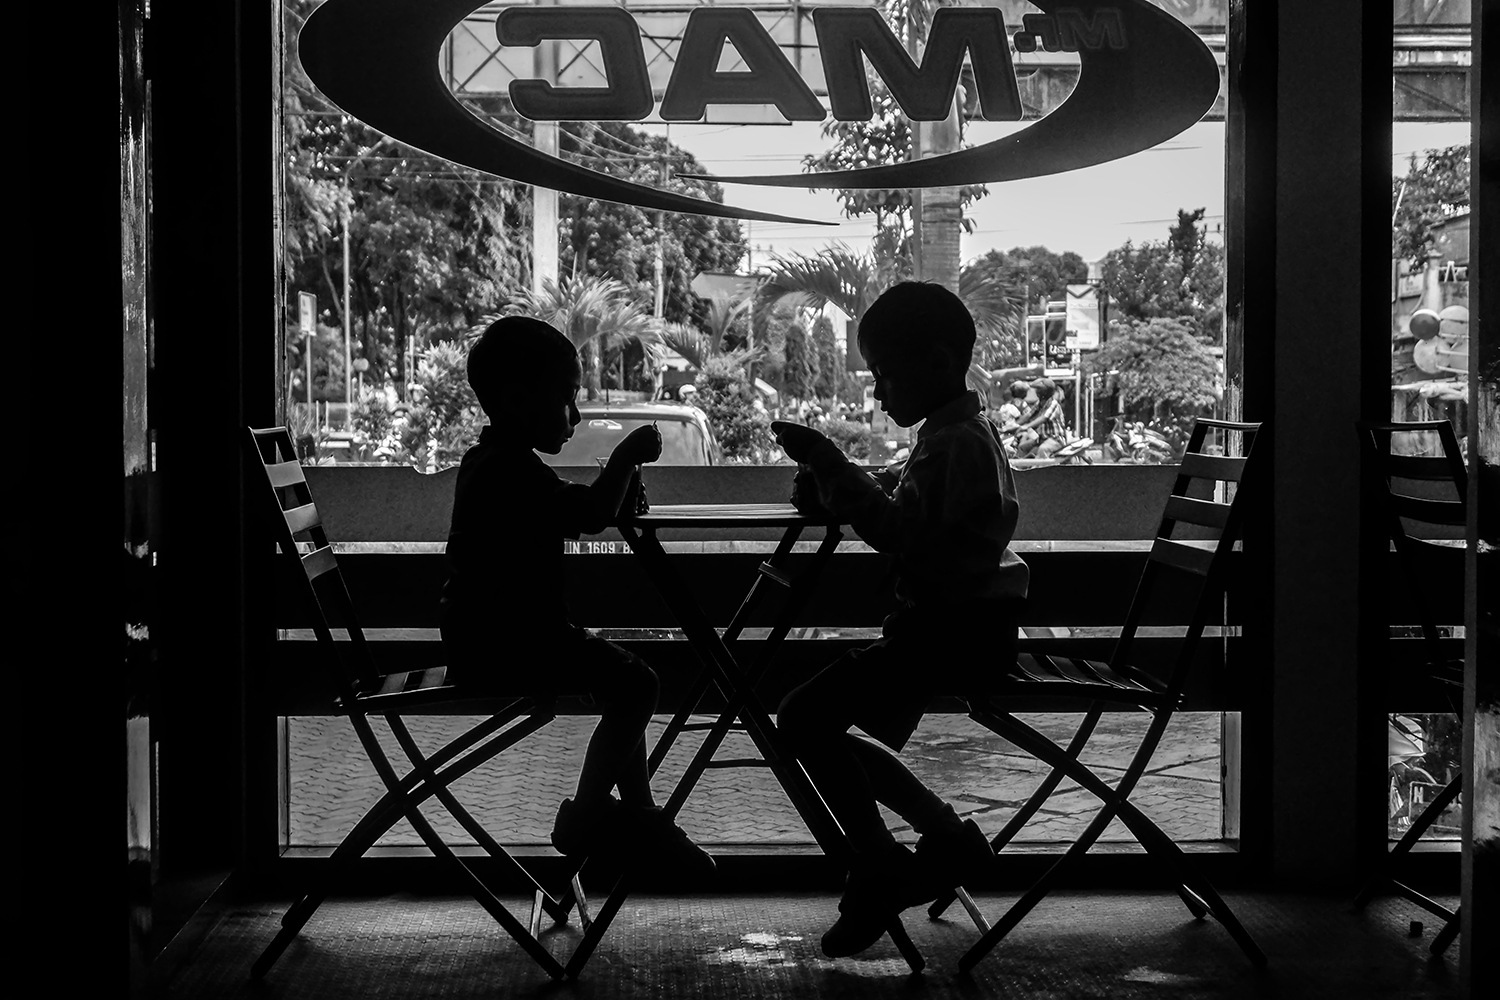 my grandsons in silhouette by Bambang